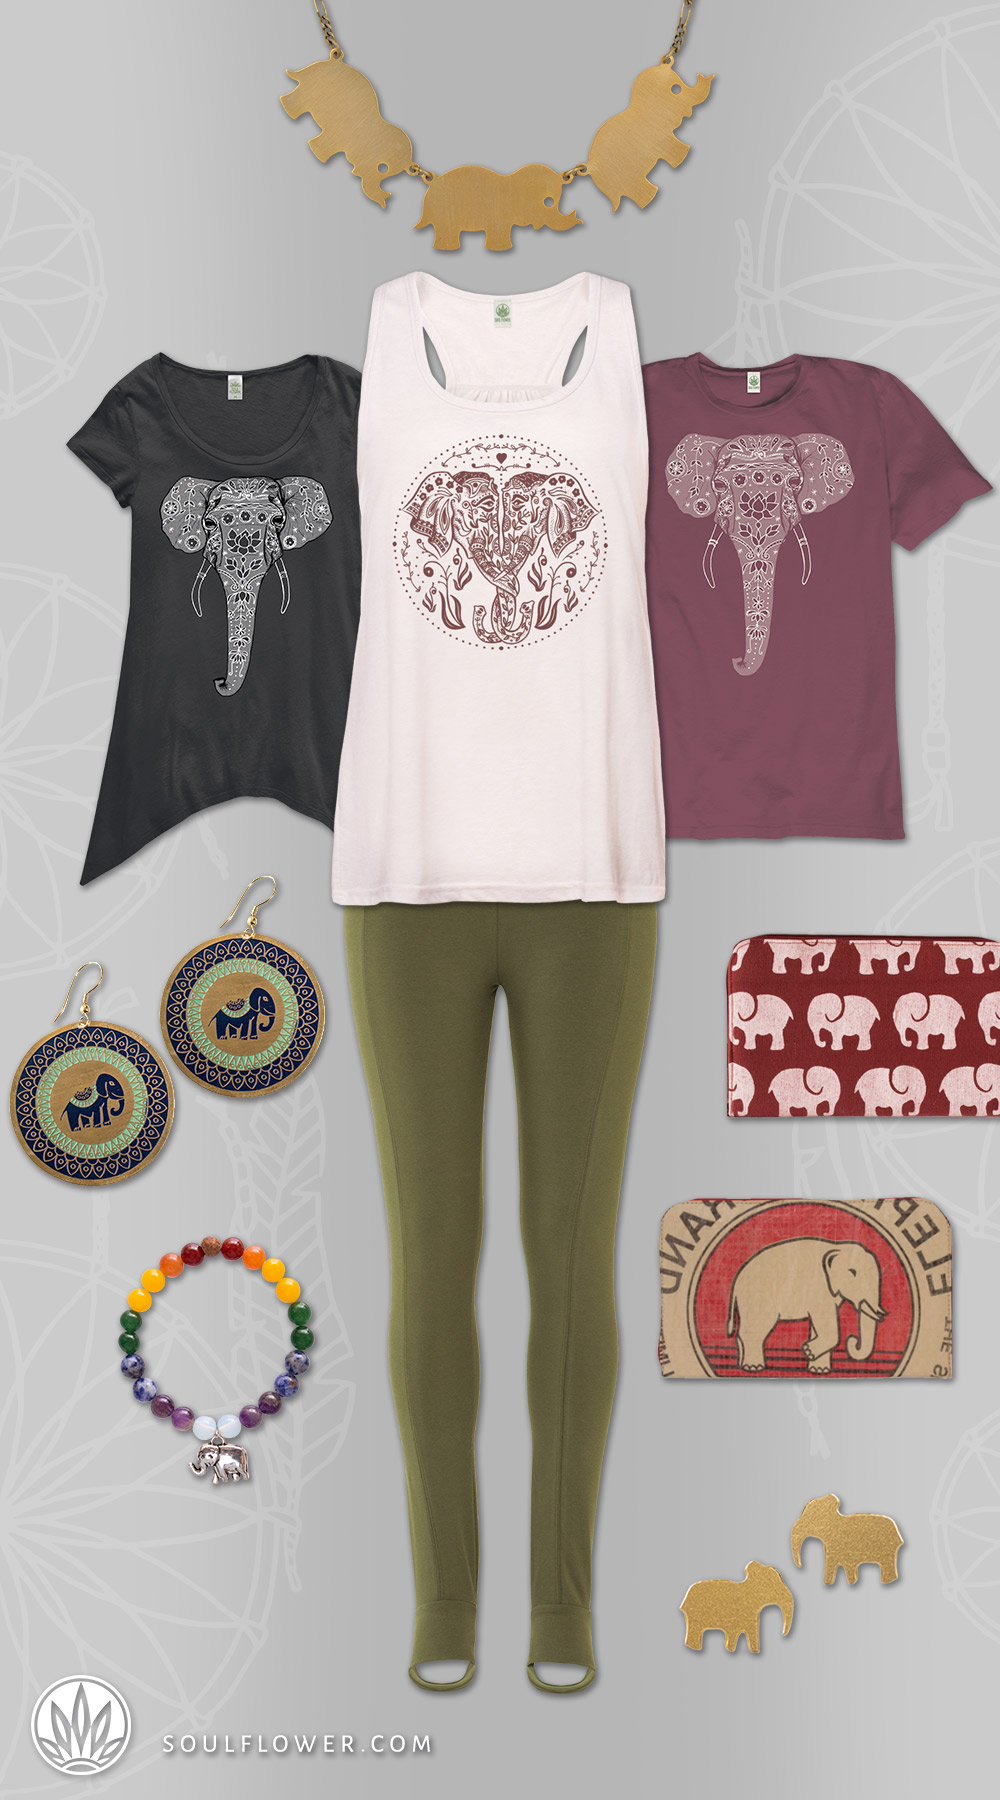 Gifts for Elaphant Lovers | Elephant Lovers Gifts | Soul Flower